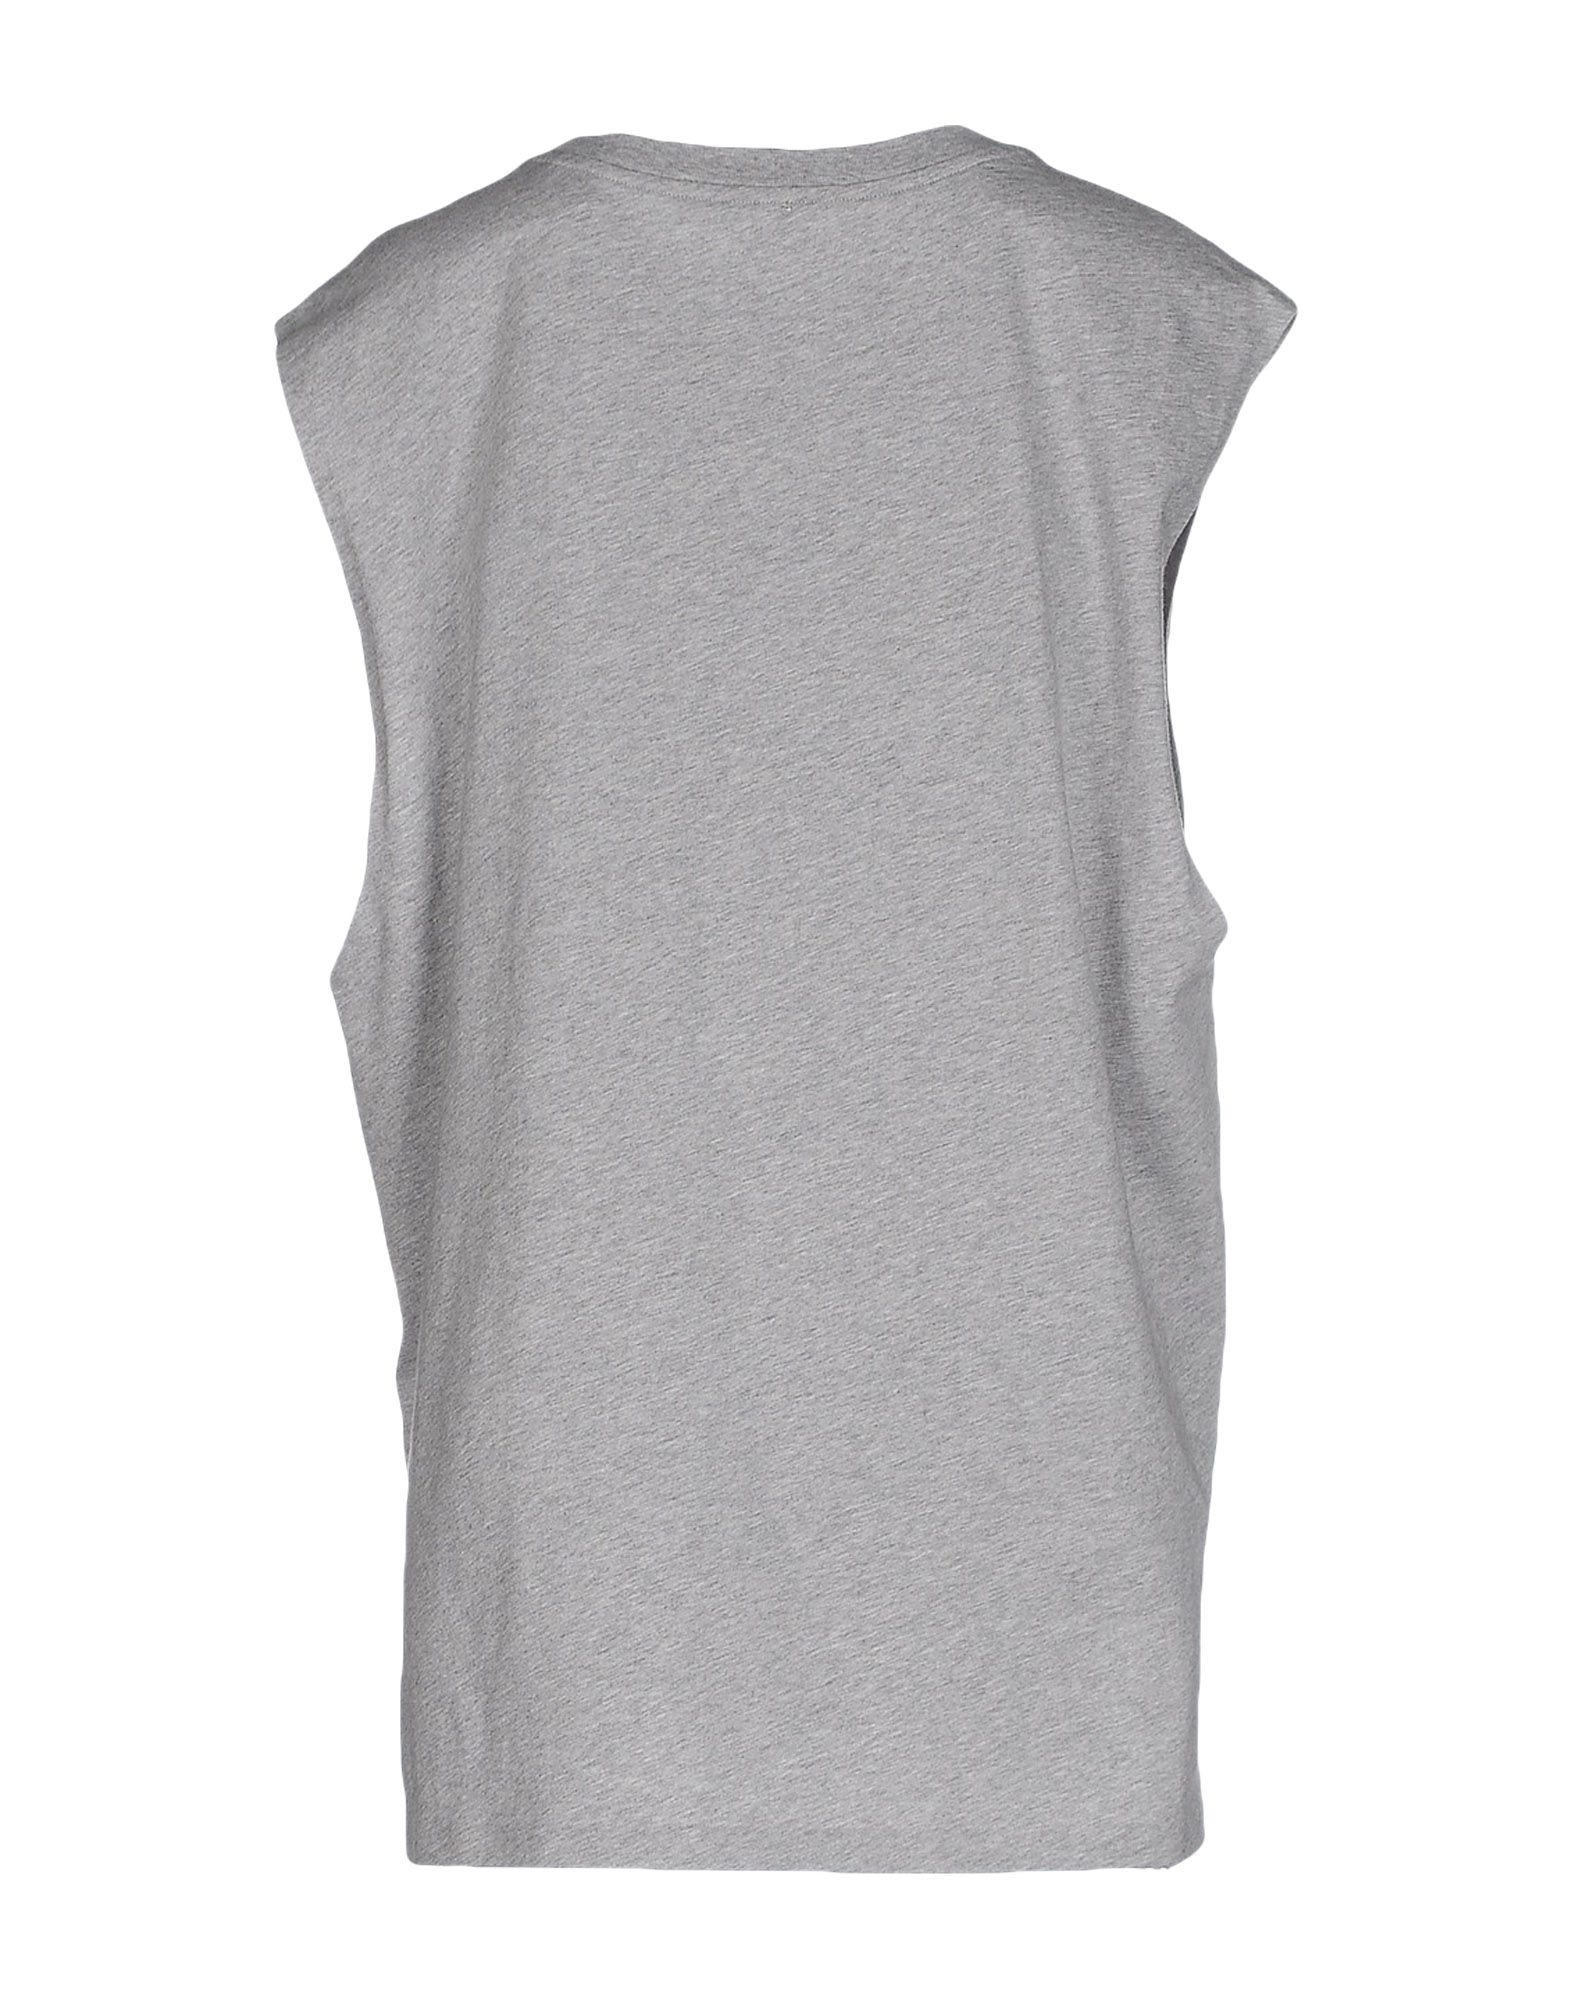 T by alexander wang t shirt in gray lyst for T by alexander wang t shirt